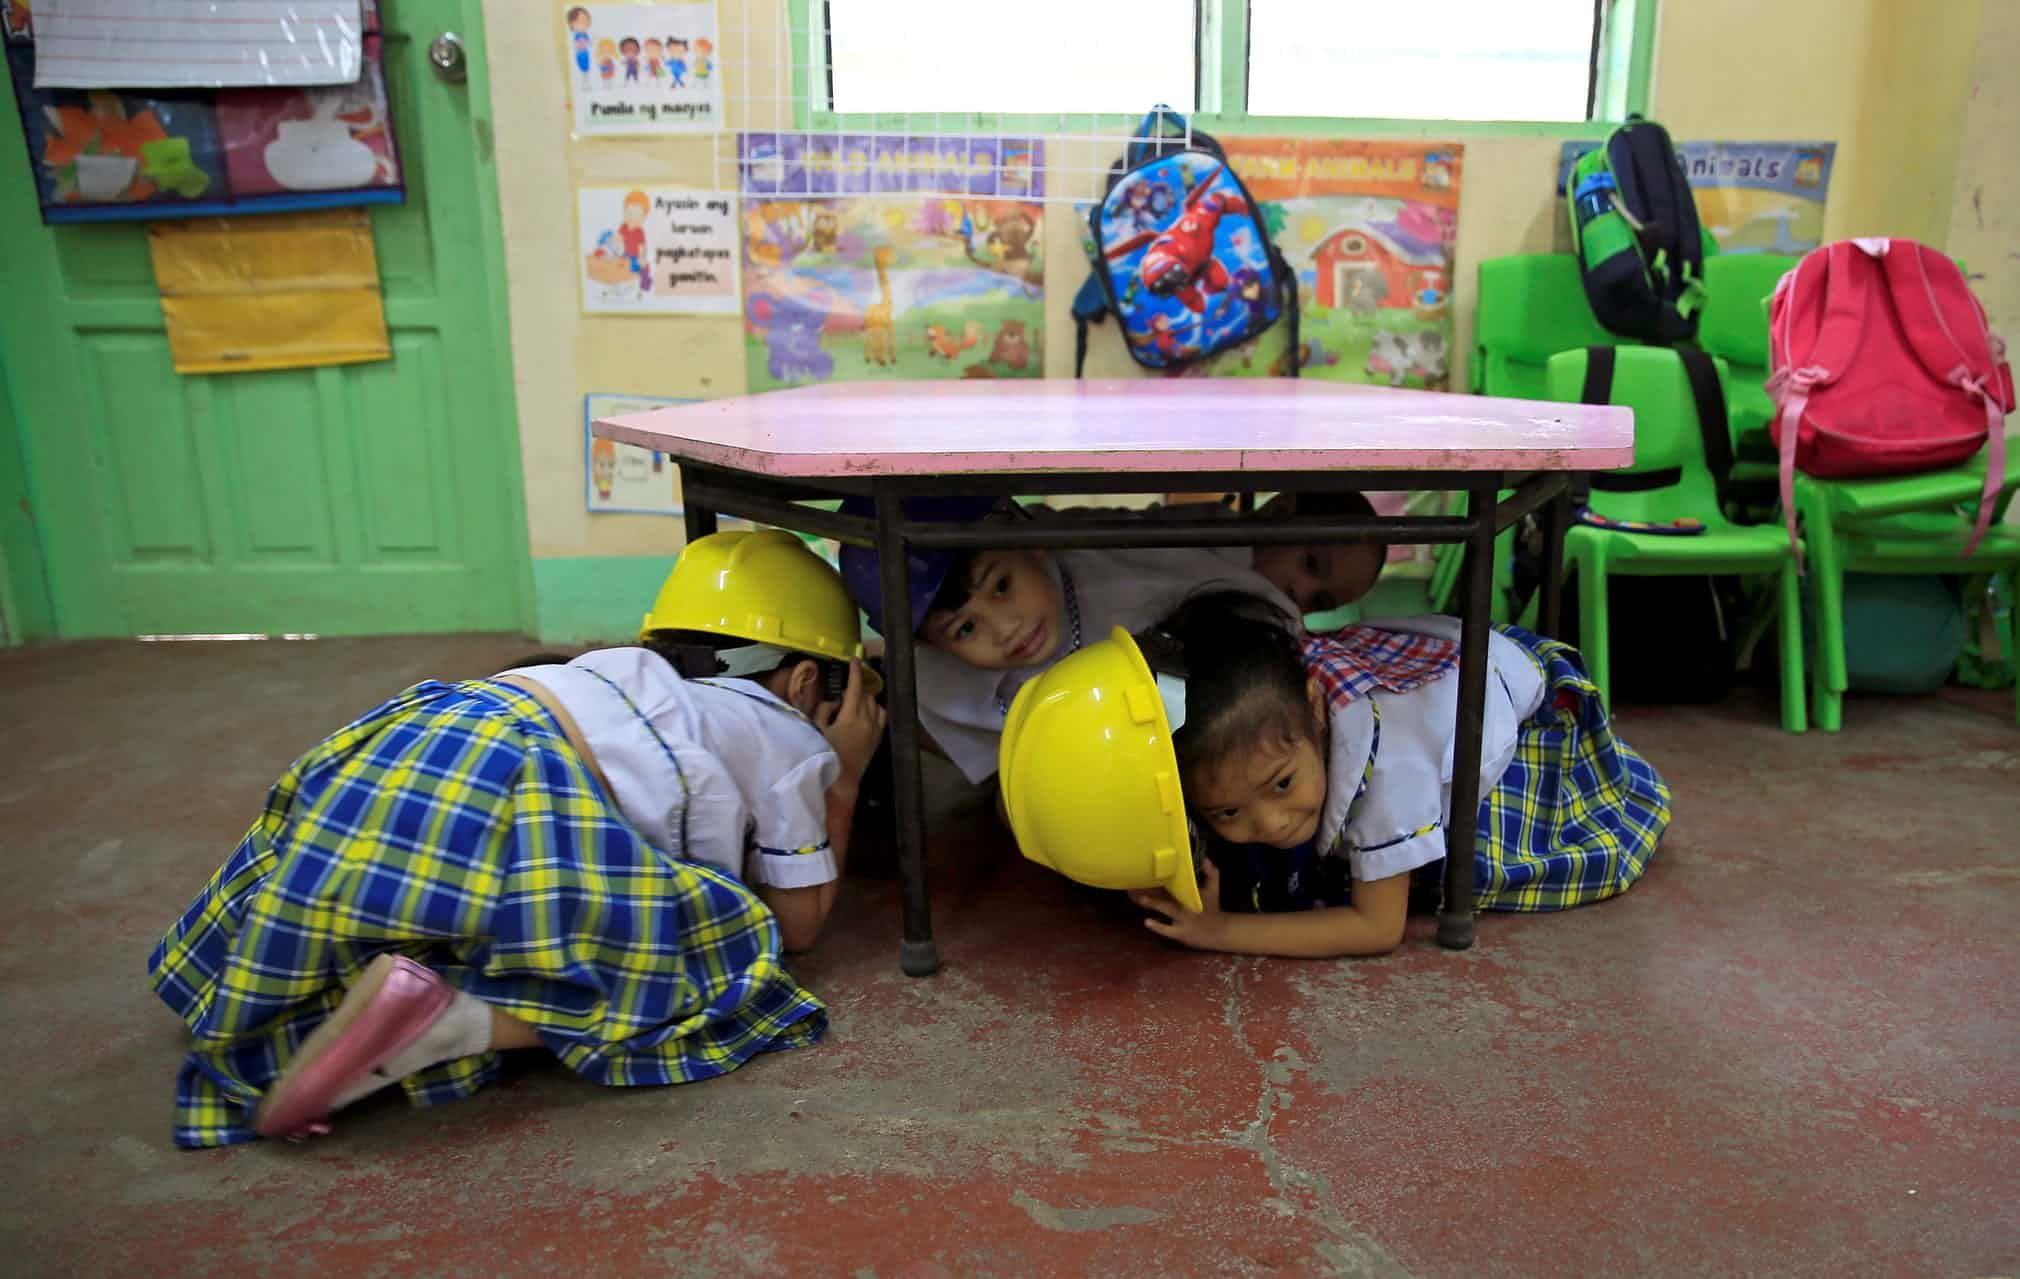 Manila Philippines Students Hide Under A Desk During An Earthquake Drill At An Elementary School In Paranaque Photograph Romeo Ra Cute Kids Philippines Kids